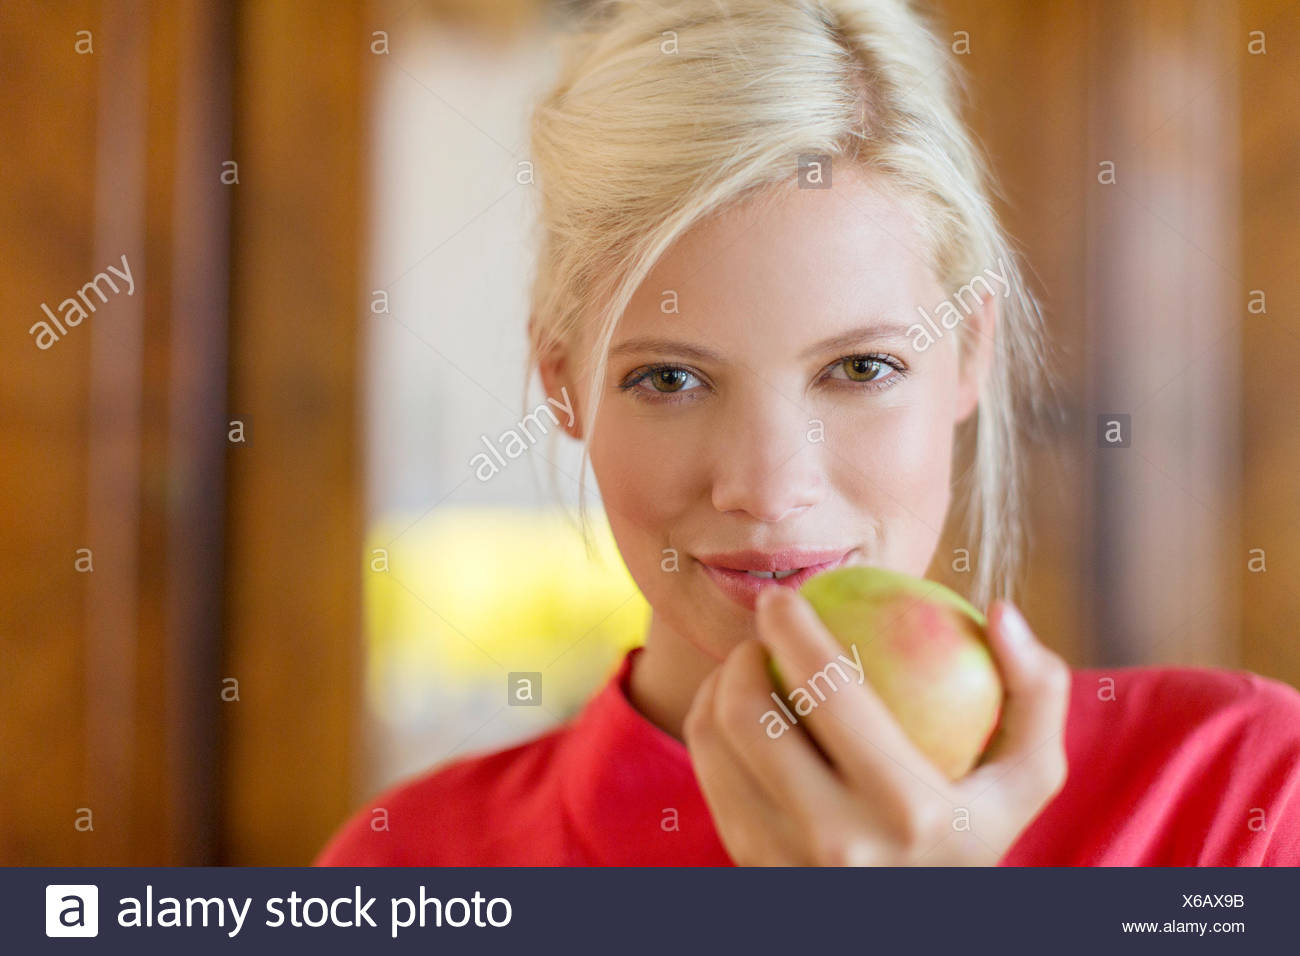 Woman eating apple indoors Stock Photo